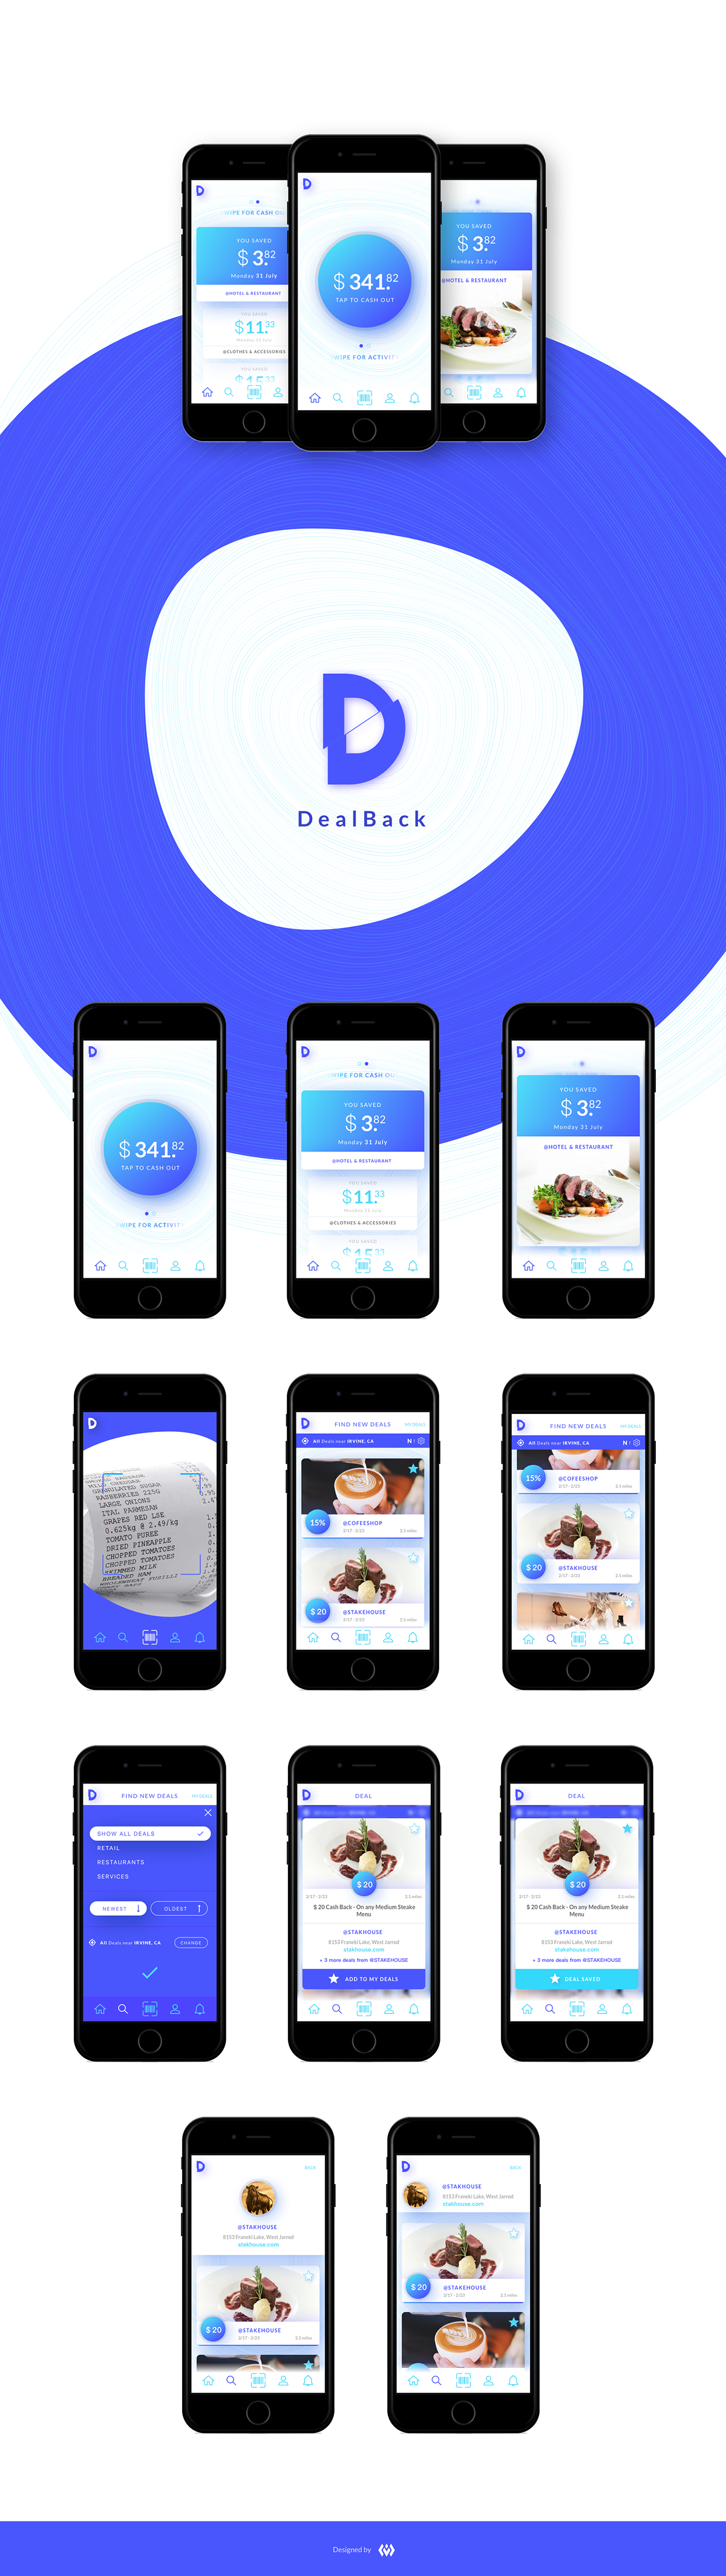 IOS Mobile App - Shopping Deals on Pantone Canvas Gallery